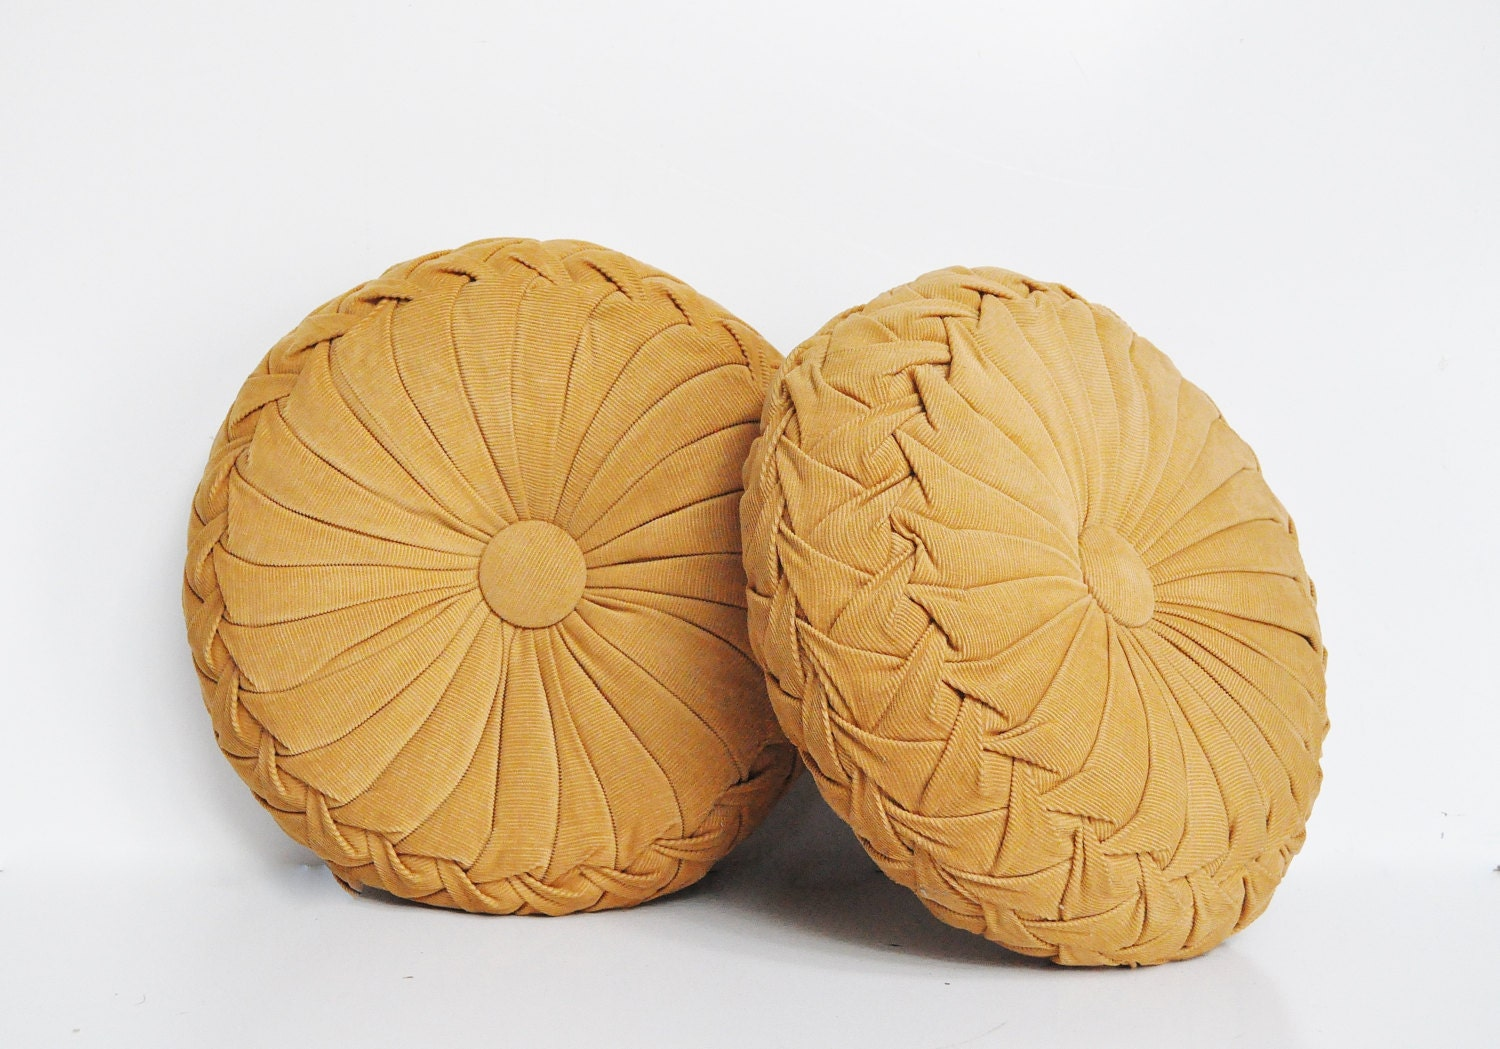 Decorative Pillows Round : Pair of Vintage Smocked Pillows Round Pillows